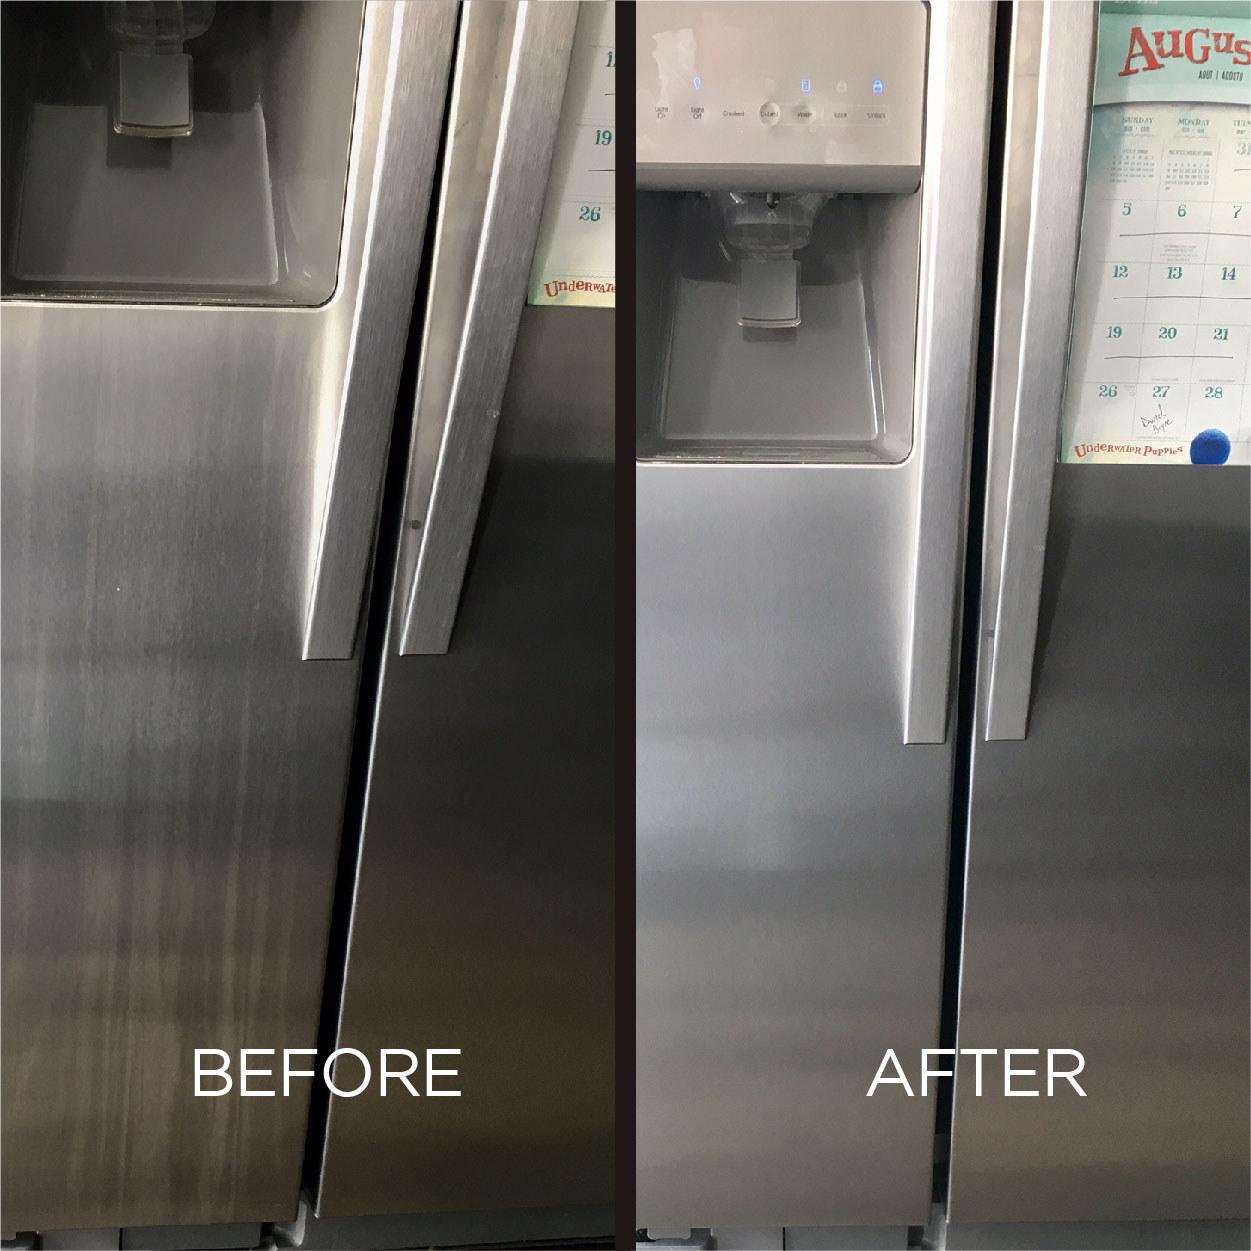 A before and after image: left shows before, with a steel fridge door covered in moisture streaks; left shows after, with the streaks and grime removed from the fridge door